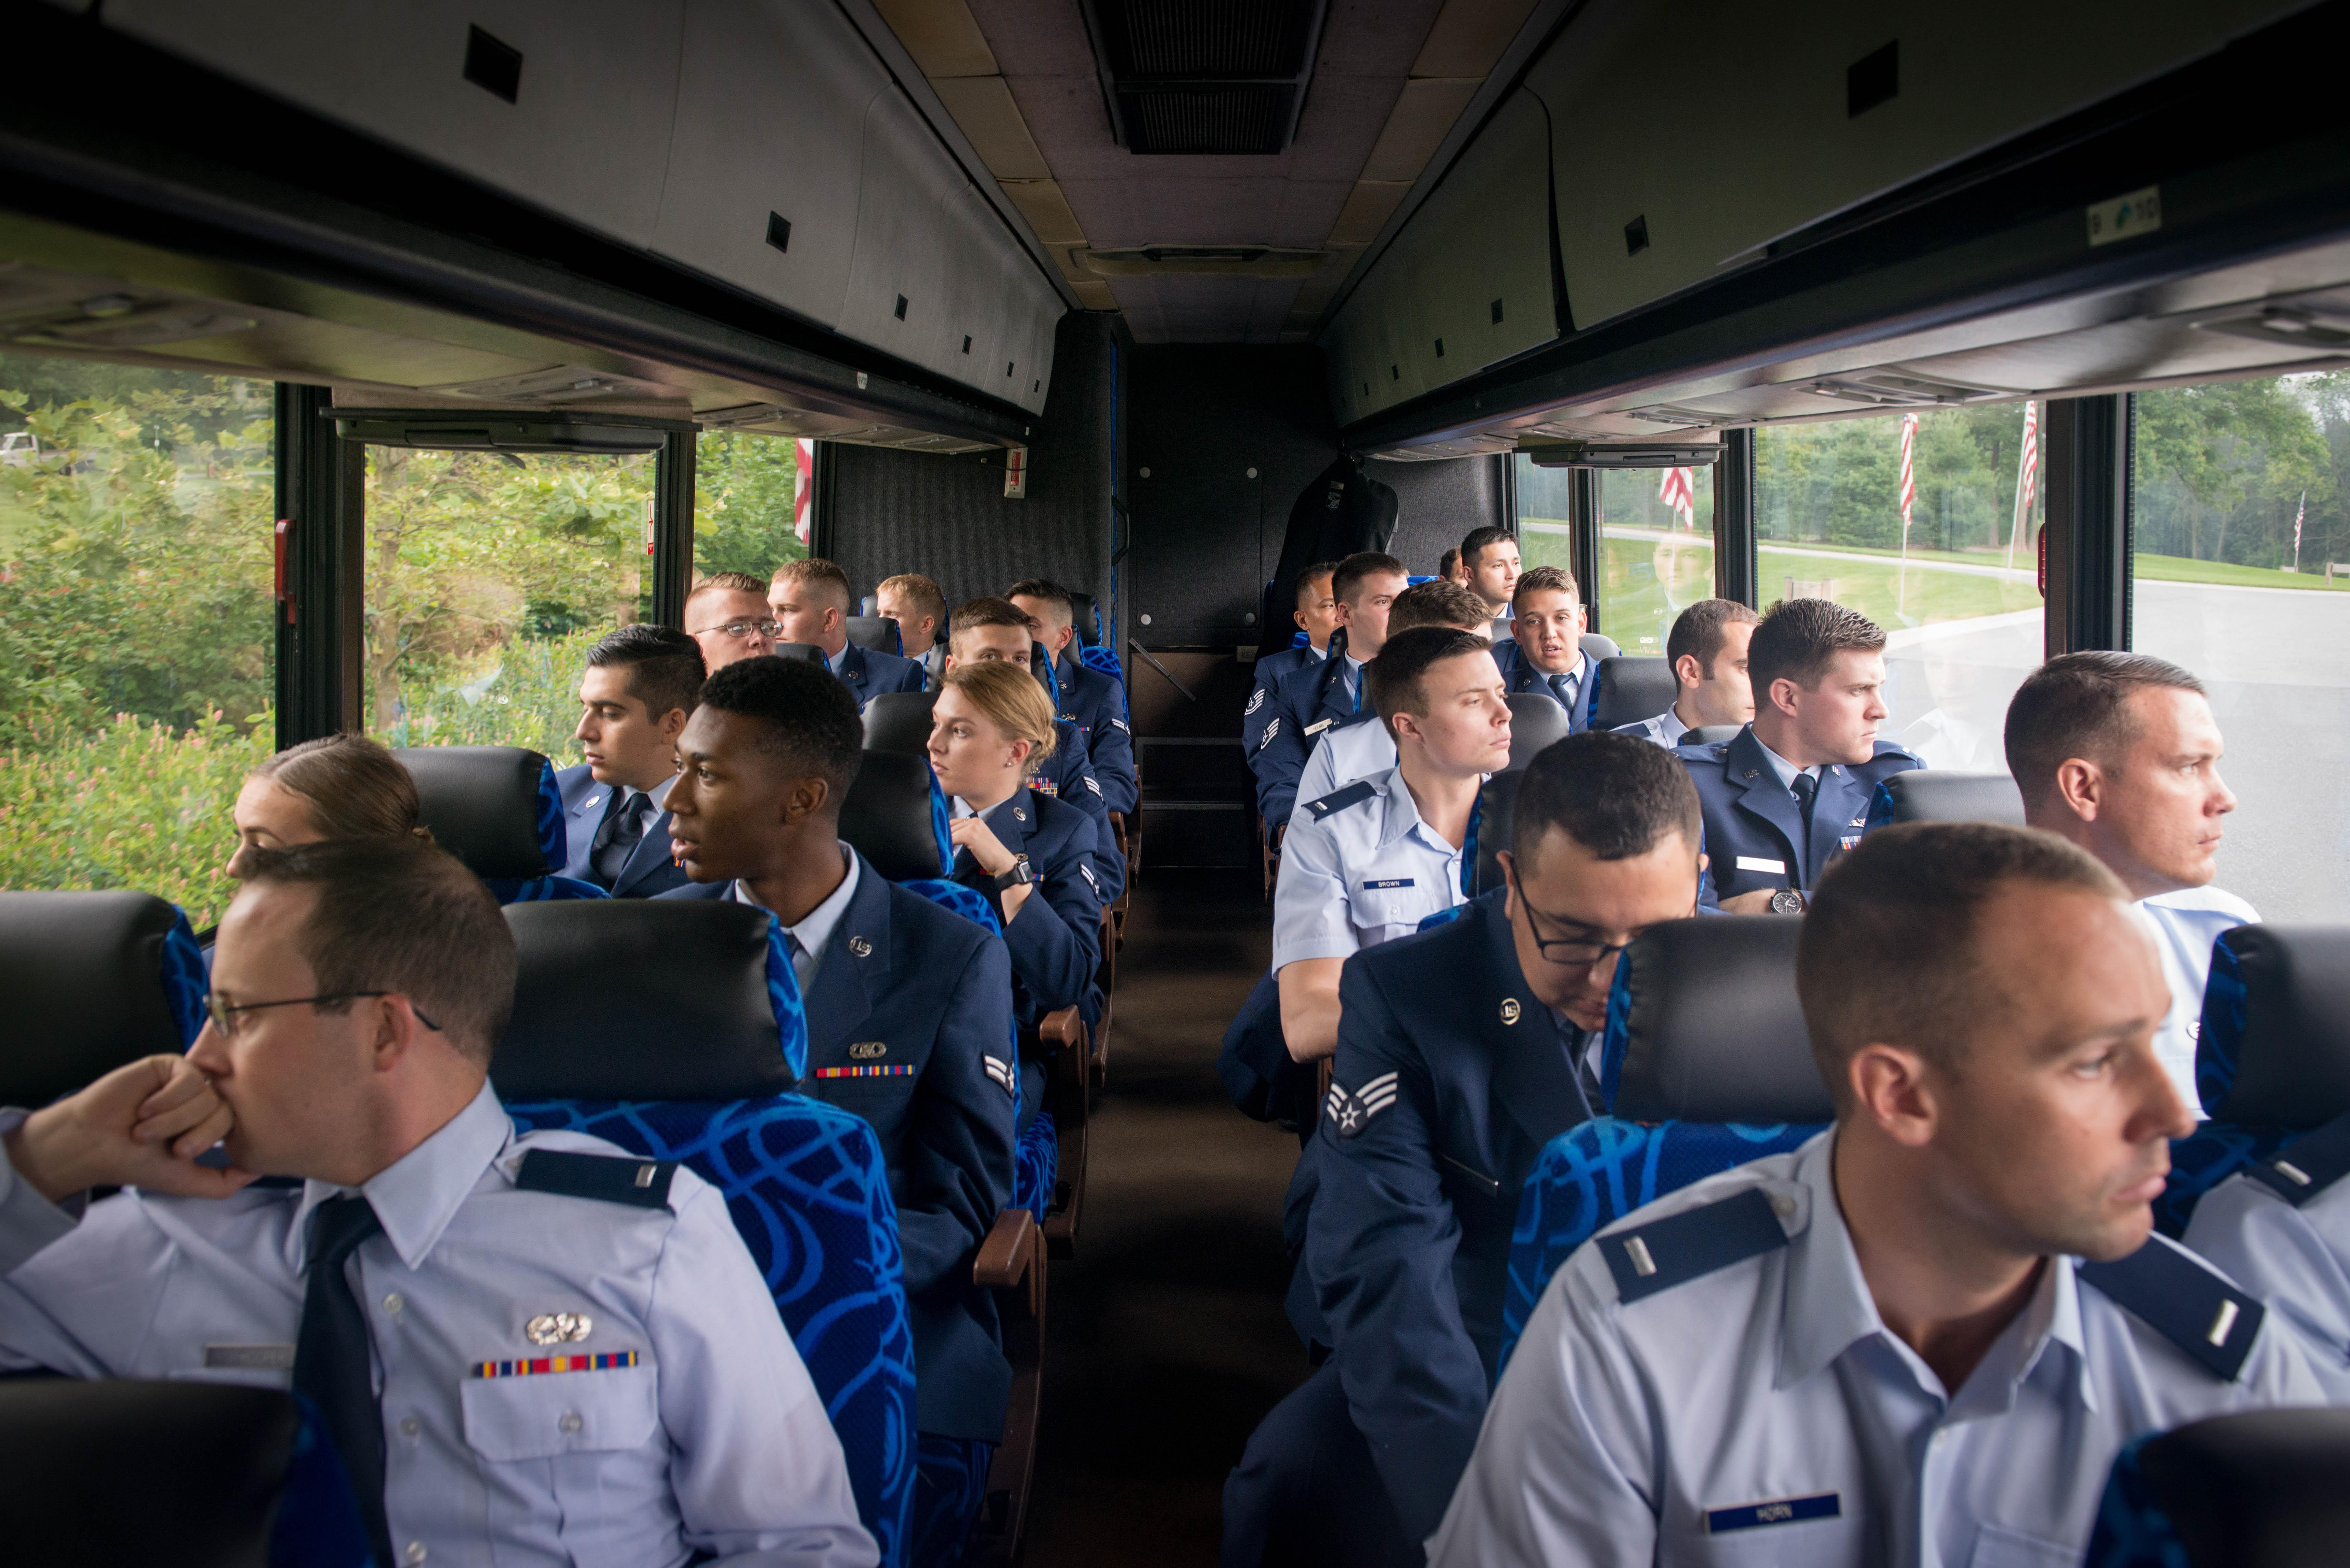 Airmen assigned to the 62nd Fighter Squadron at Luke Air Force Base, Ariz, travel to the Indiantown Gap National Cemetery in Annville Penn., Aug. 4, 2017. Approximately 50 Airmen traveled more than 2,000 miles on plane and bus to attend 2nd Lt. Charles E. Carlson's funeral. Carlson was a former 62nd FS, who died during World War II after being shot down. (Staff Sgt. Jensen Stidham/Air Force)